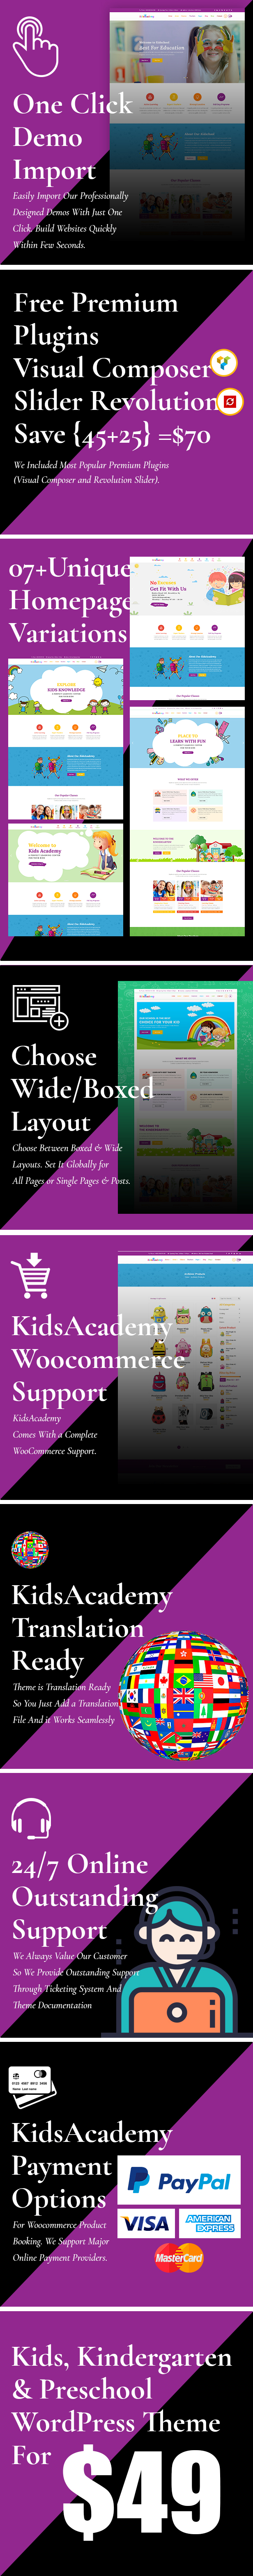 KidsAcademy - Kids, Kindergarten & Preschool WordPress Theme - 2